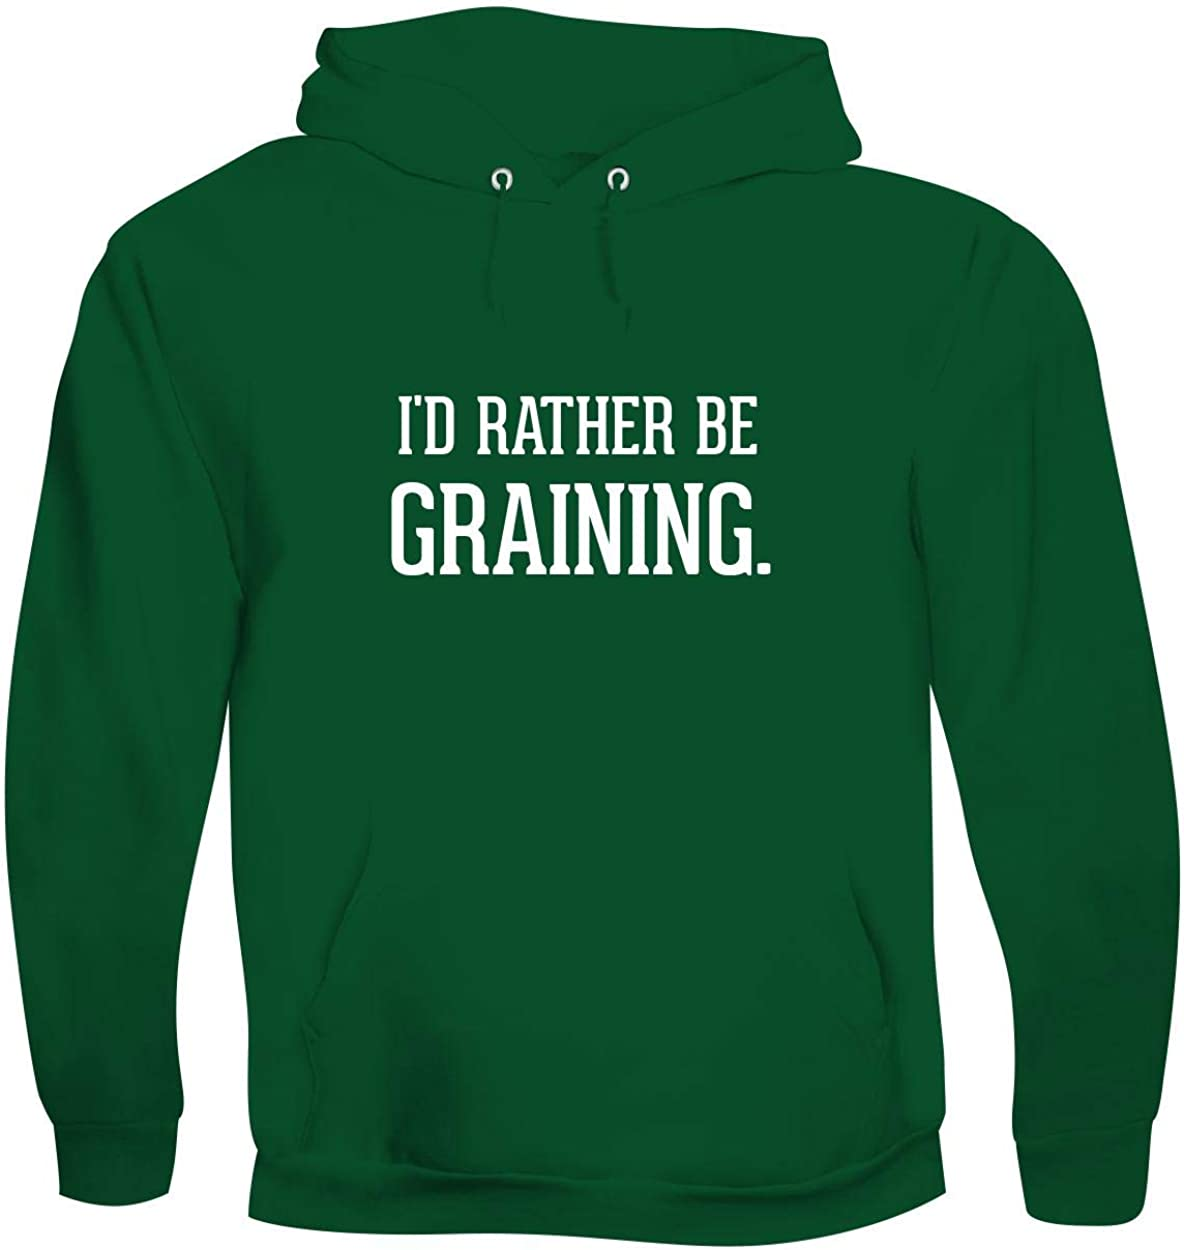 I'd Rather Be GRAINING. - Men's Soft & Comfortable Pullover Hoodie